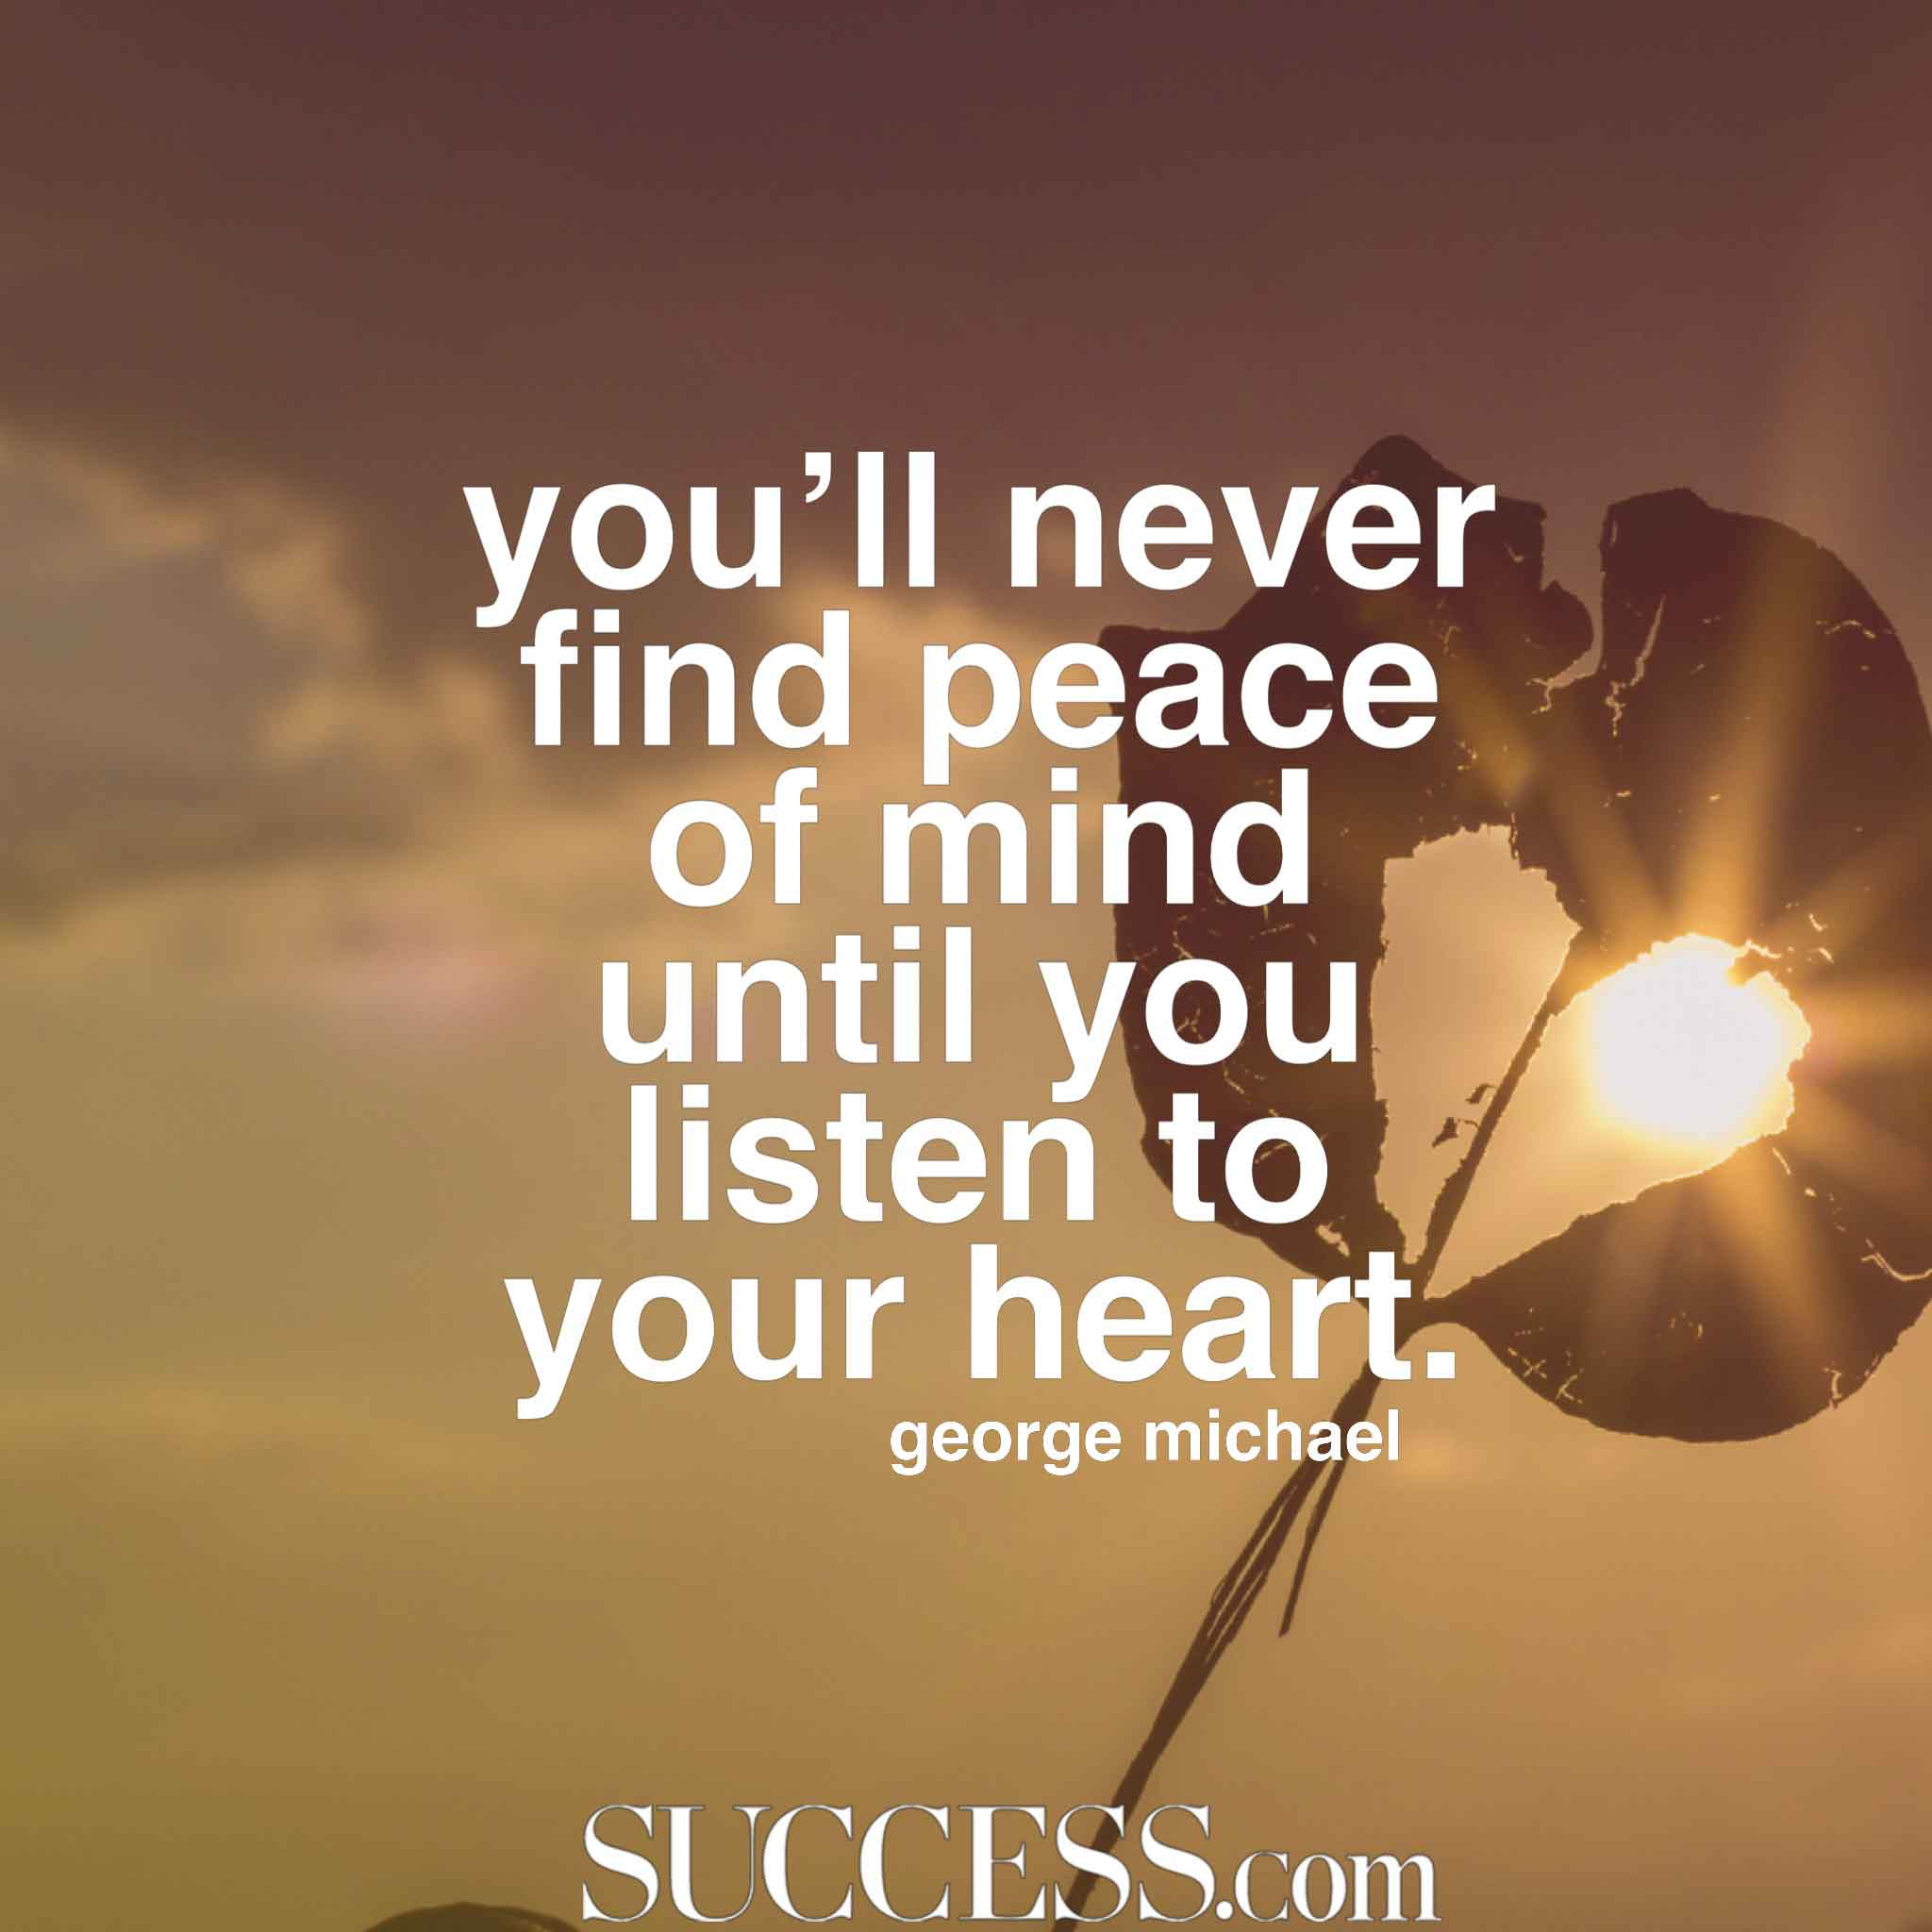 finding inner peace When i finally got the right treatment and got sober, after a decade of madness, i heard people speak about serenity and finding peace of mind in early recovery, it was still an utter mystery to me i saw a counselor who told me to give it time.